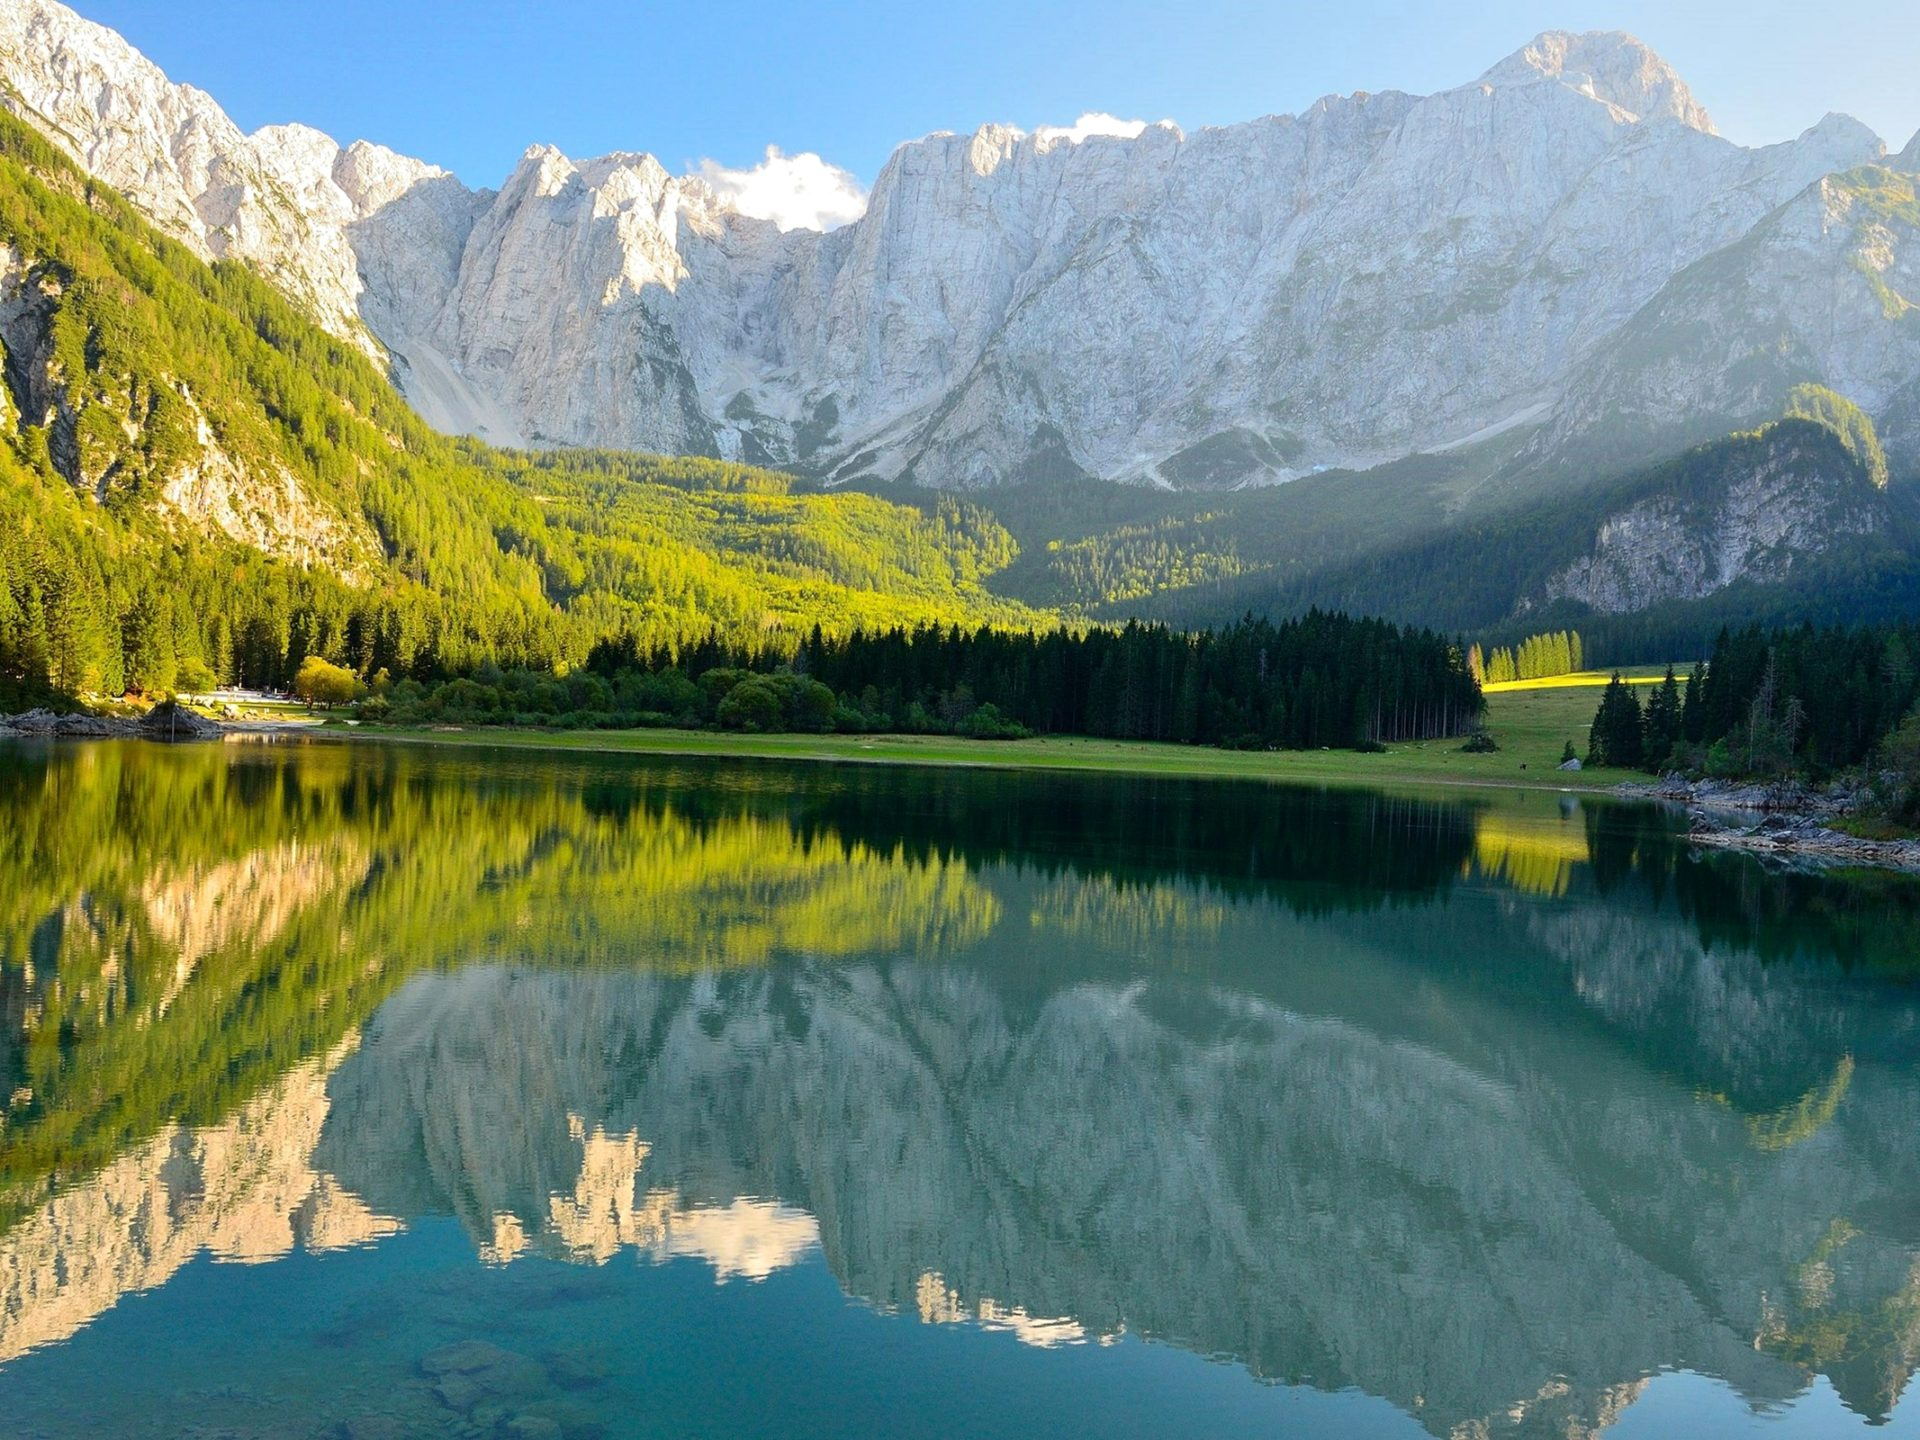 Hd Christmas Wallpapers 1080p Italy Mountains Lake Forests Scenery Nature 412799